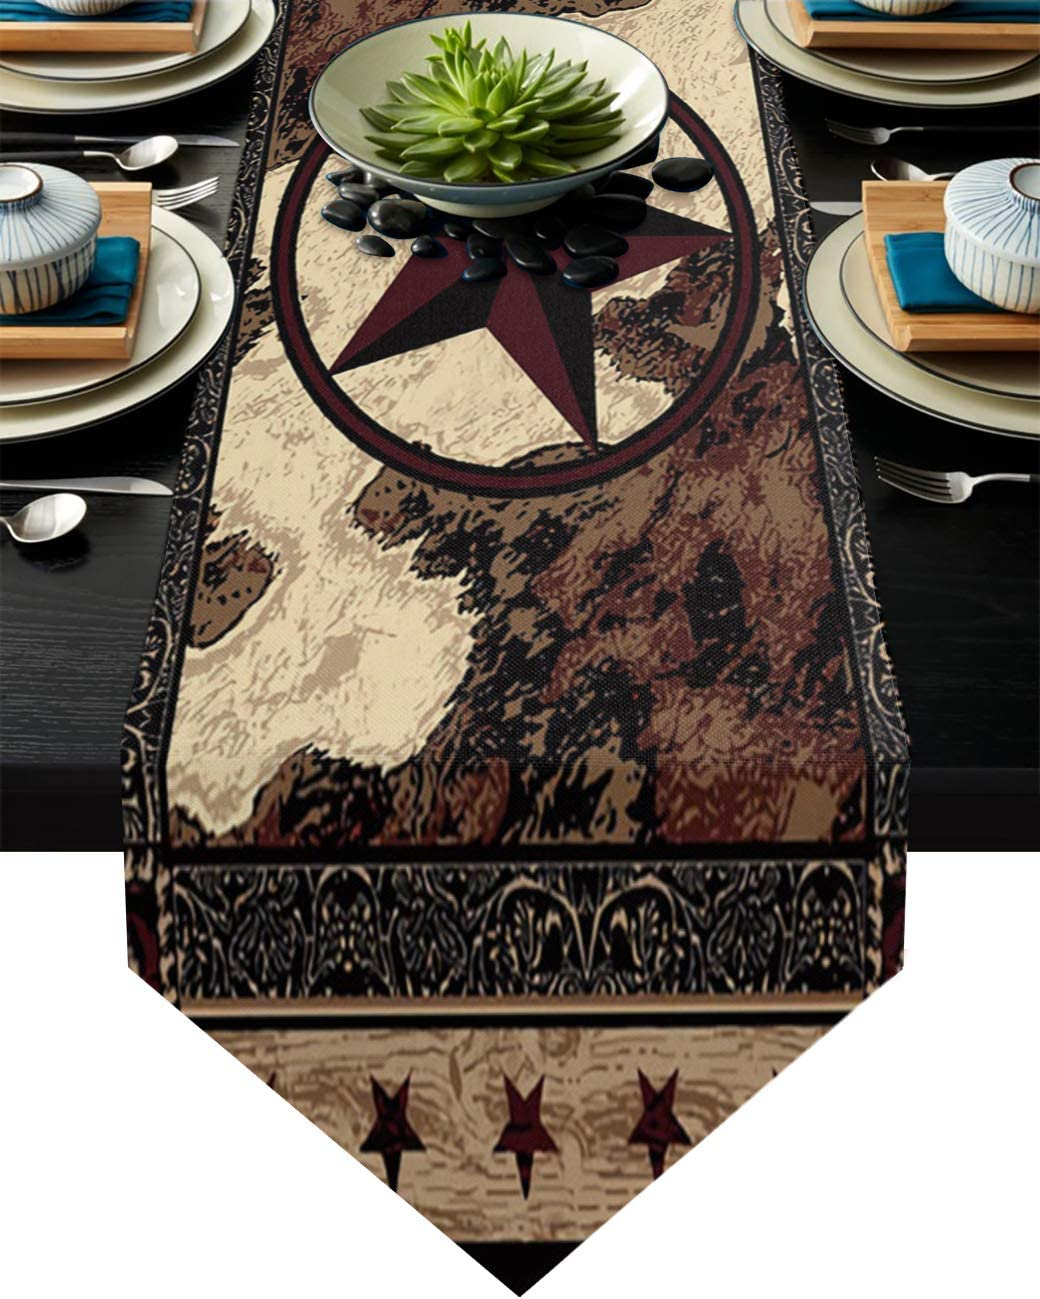 COLORSUM Linen Burlap Table Runner Dresser Scarves Western Texas Star on Wood Panel Rustic Vintage Style Home Dining Table Decor Table Runner Mat for Farmhouse, Wedding, Party, BBQ- 18 x 72 Inch